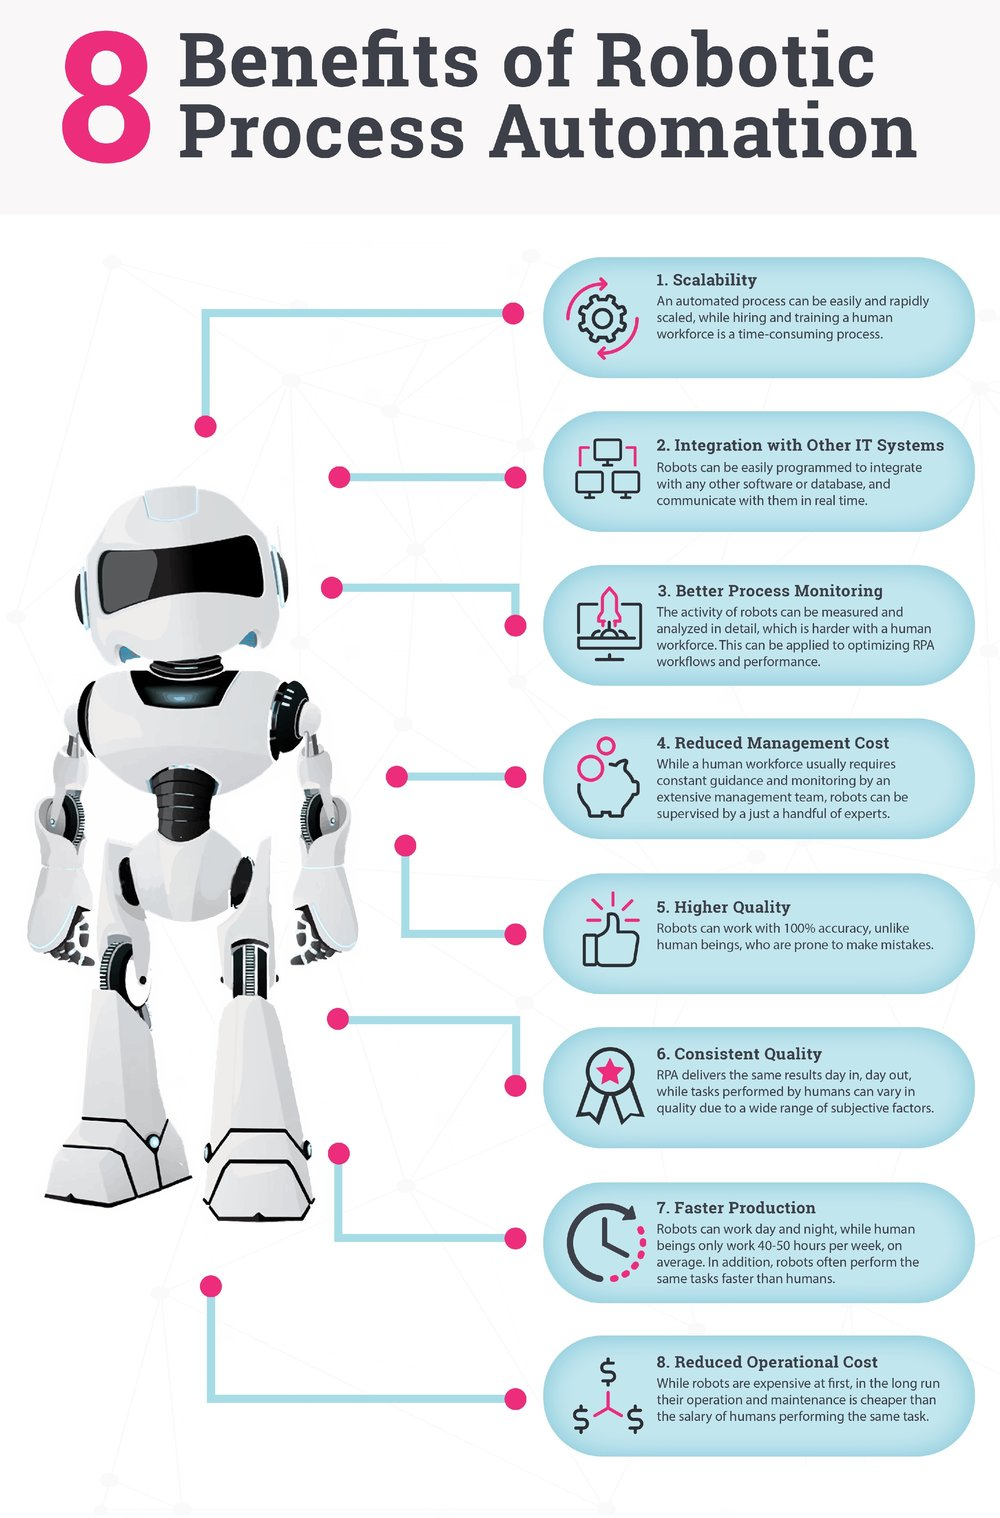 The-Benefits-of-Robotic-Process-Automation-v2.jpg